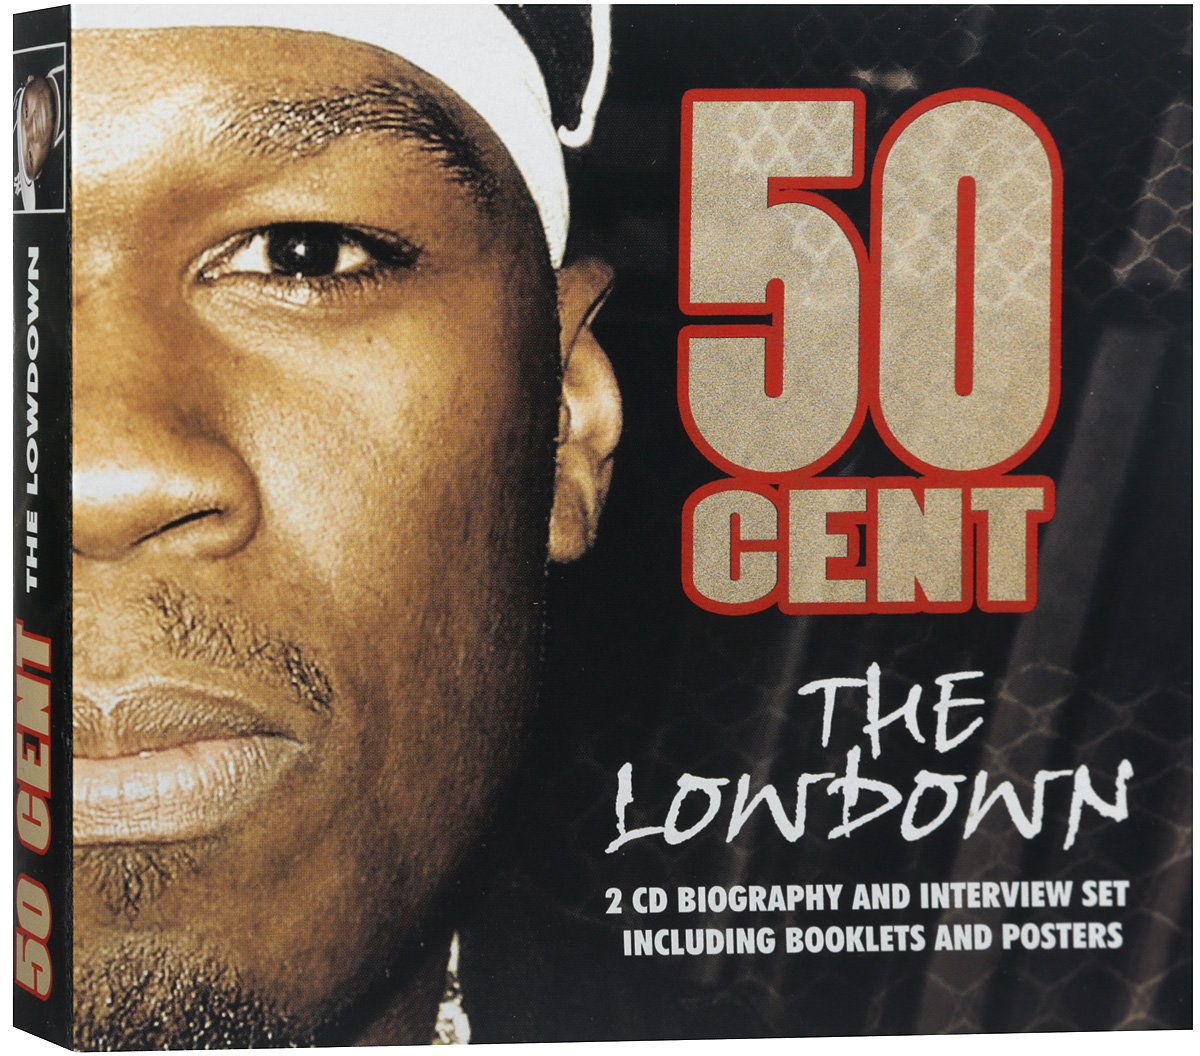 50 Cent 50 Cent. The Lowdown (2 CD) 50 cent london